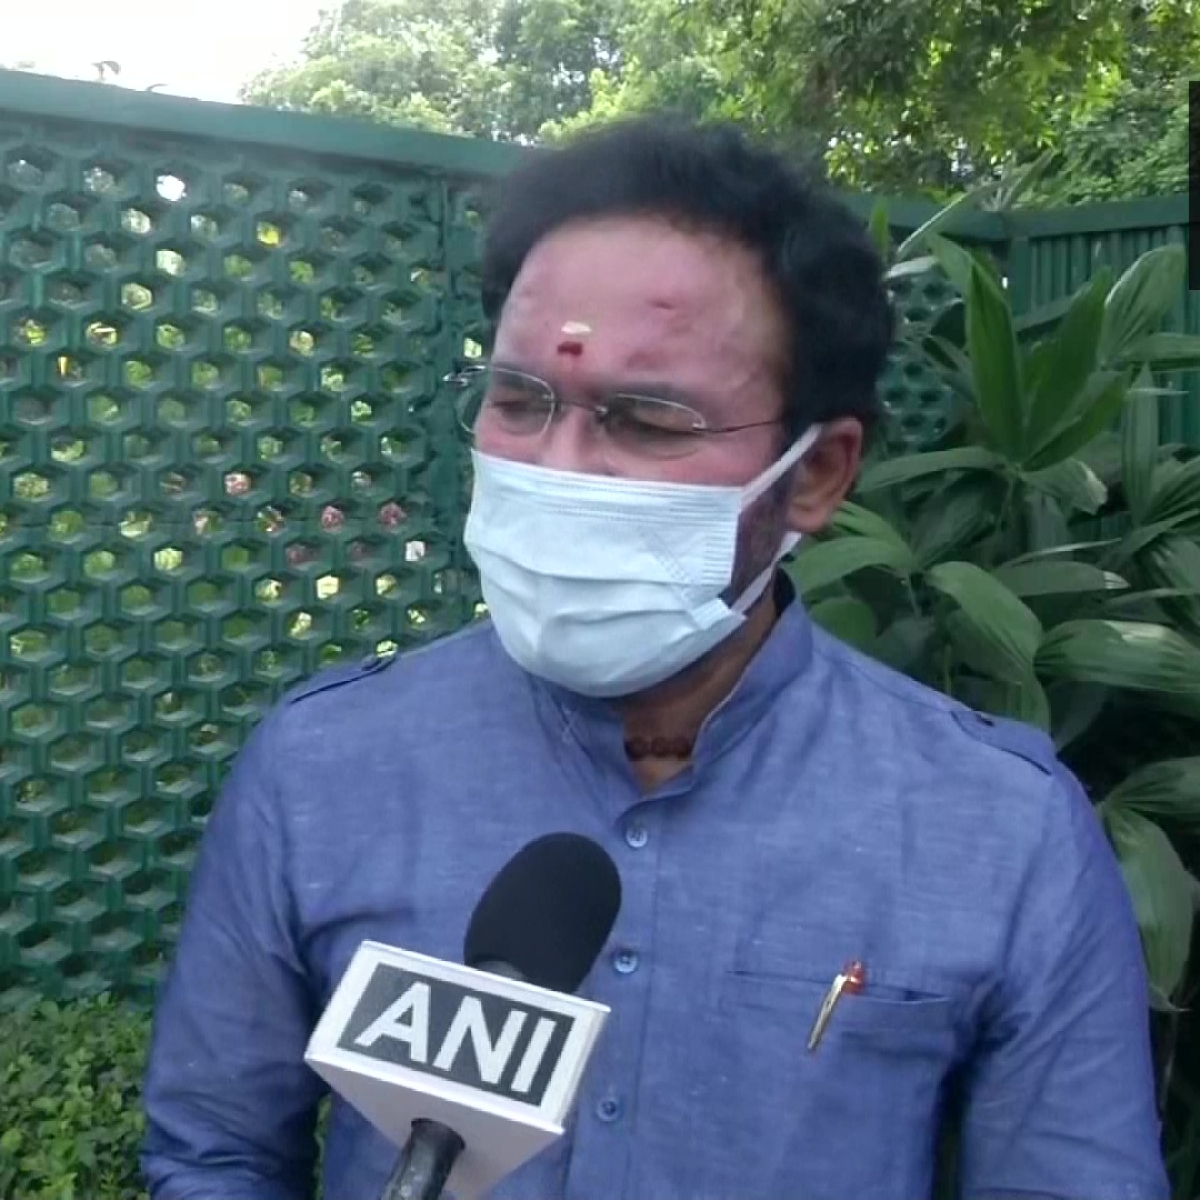 People want to fight against KCR family rule: MoS G Kishan Reddy after Eatala Rajender joins BJP